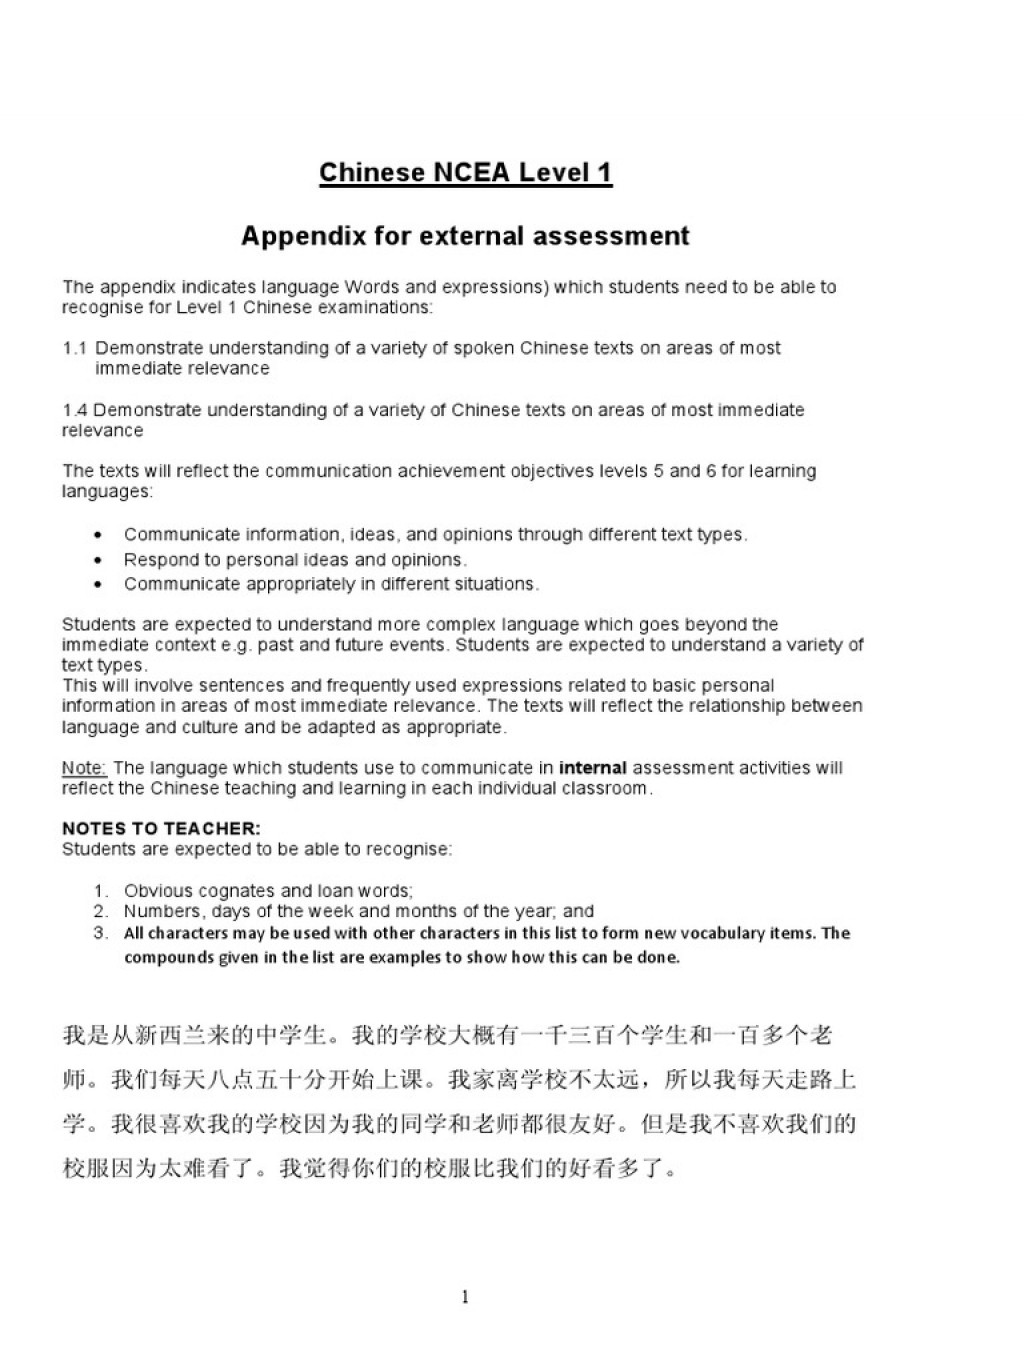 009 Essay Example George Washington Chinese Vocab Ncea Level 1 575ee370b6d87ff9888b4638 Impressive Prompt University Essays That Worked Junior Cert Large